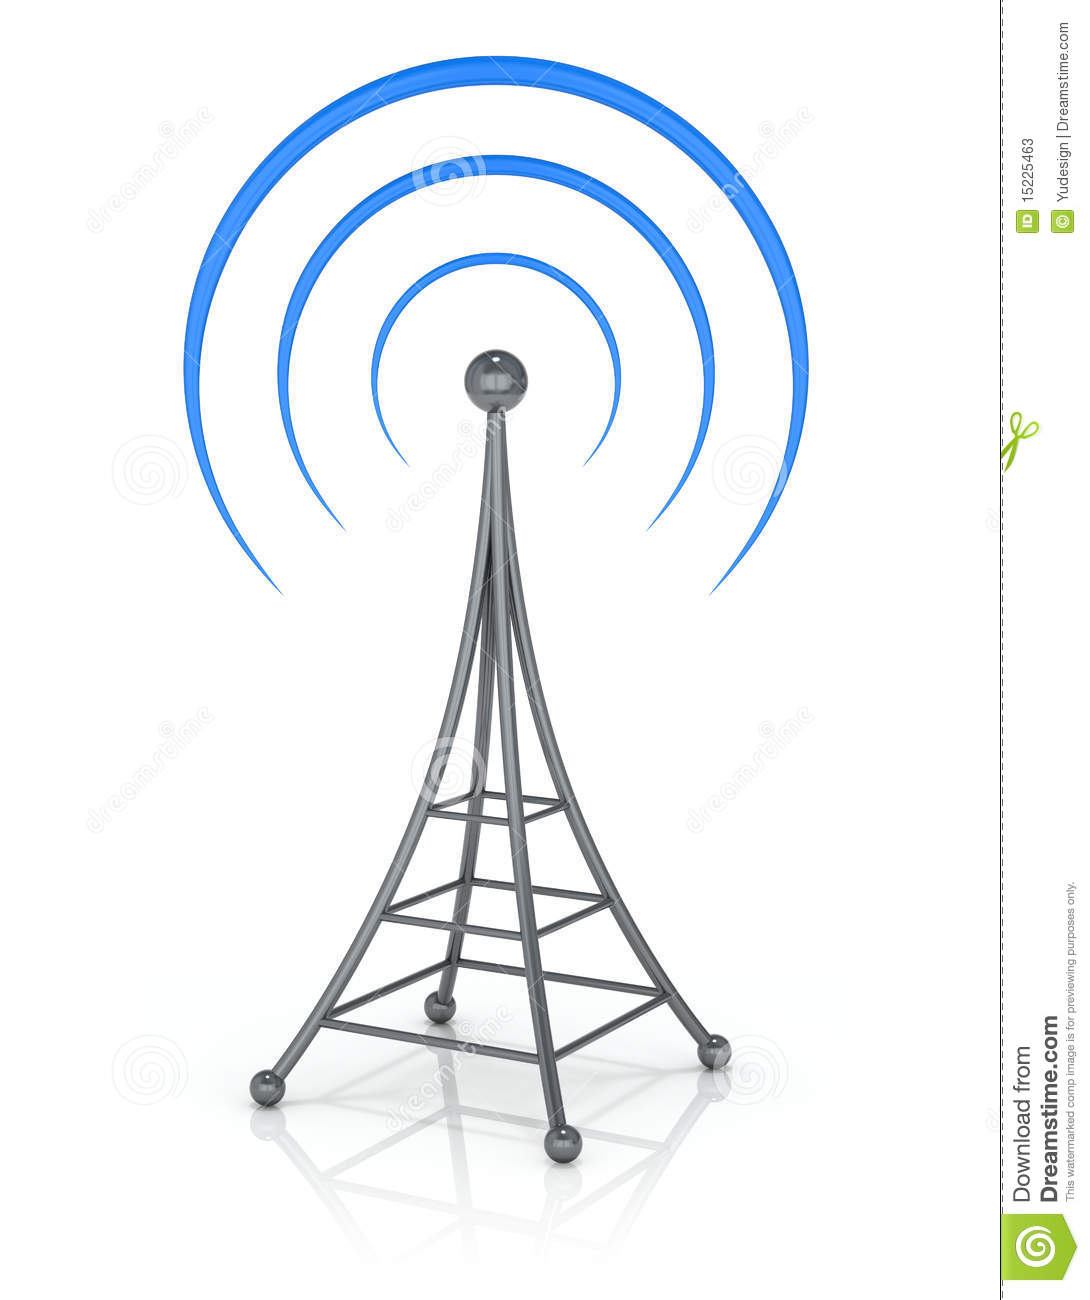 Radio Tower Clipart Radio Tower Clip Art Vector